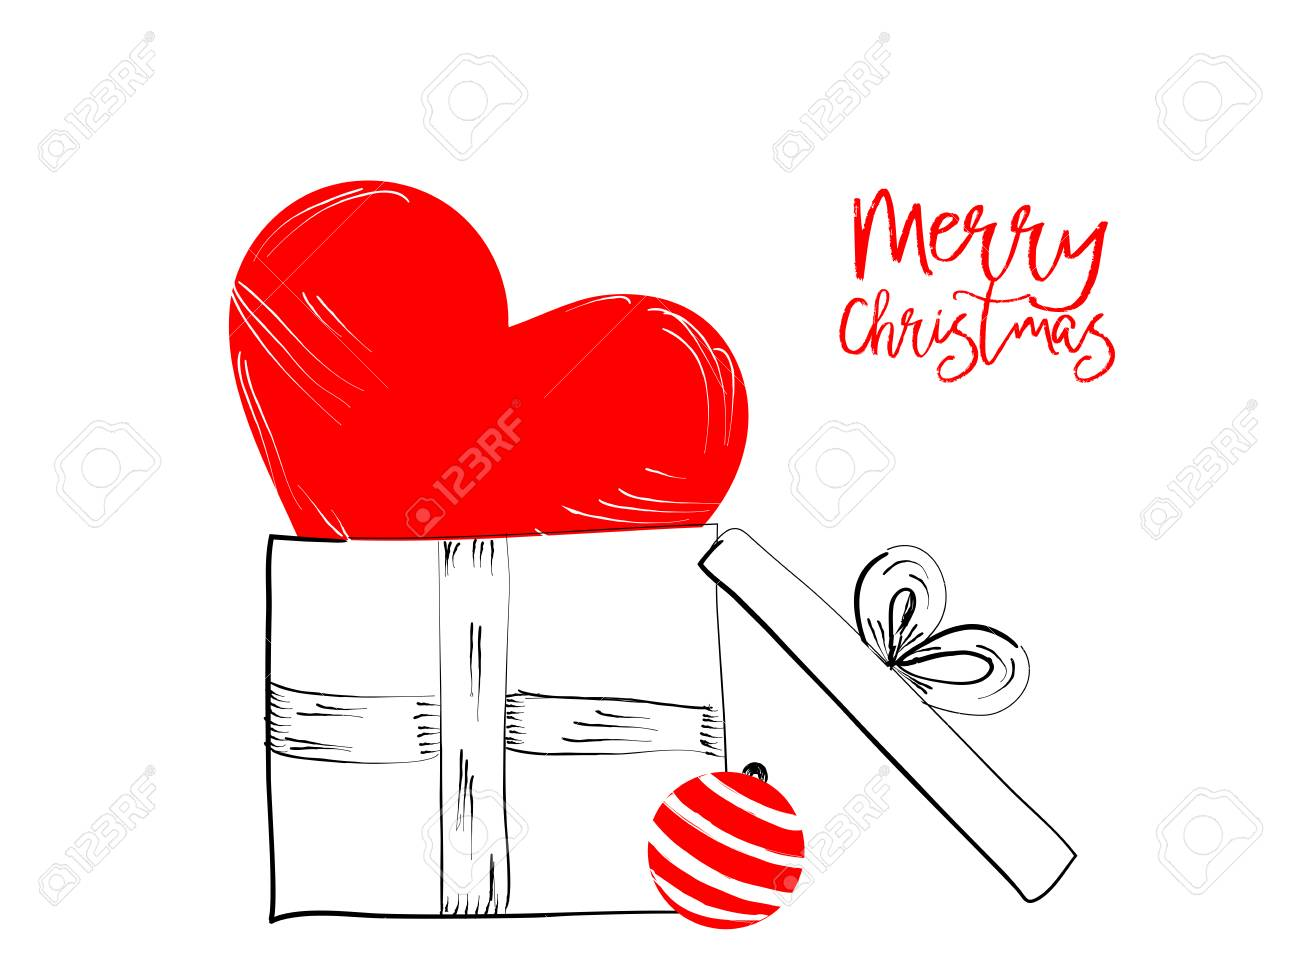 Merry Christmas greetings cards hand draawn with black and rec ink pens for loving holidays - Vector Illustration isolated on white Stock Vector - 88847019